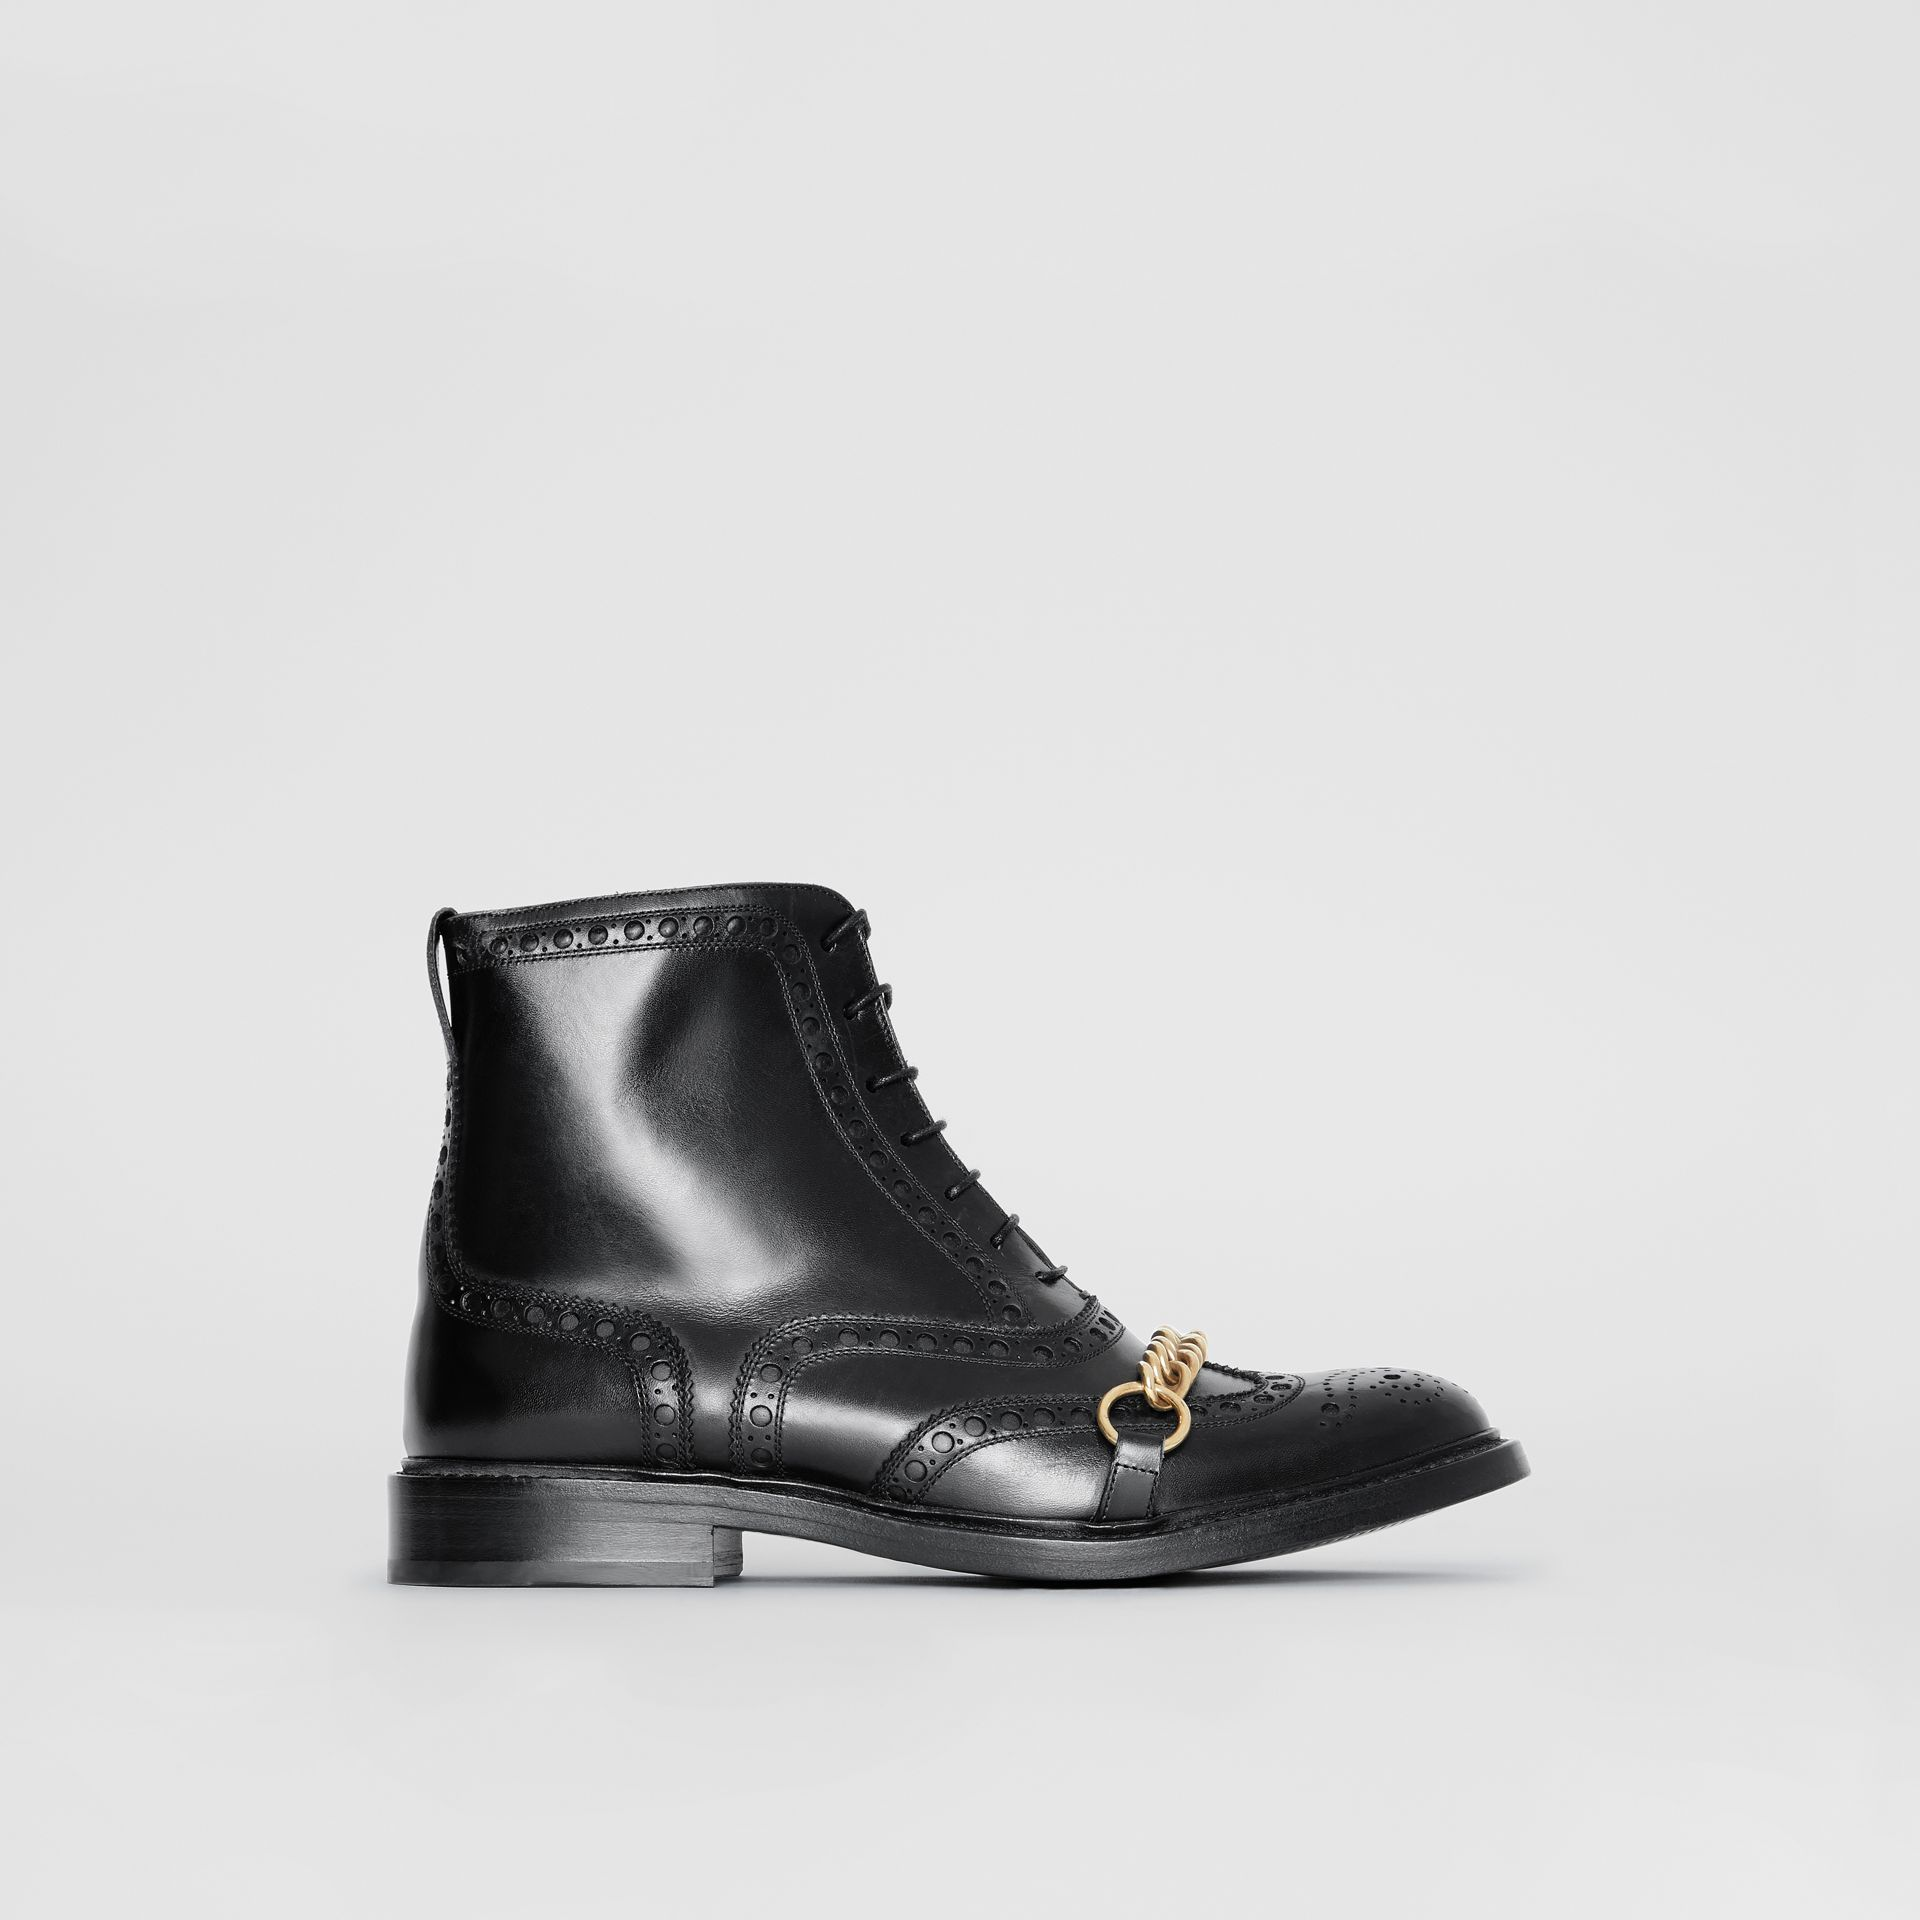 Link and Brogue Detail Leather Boots in Black - Women | Burberry - gallery image 5